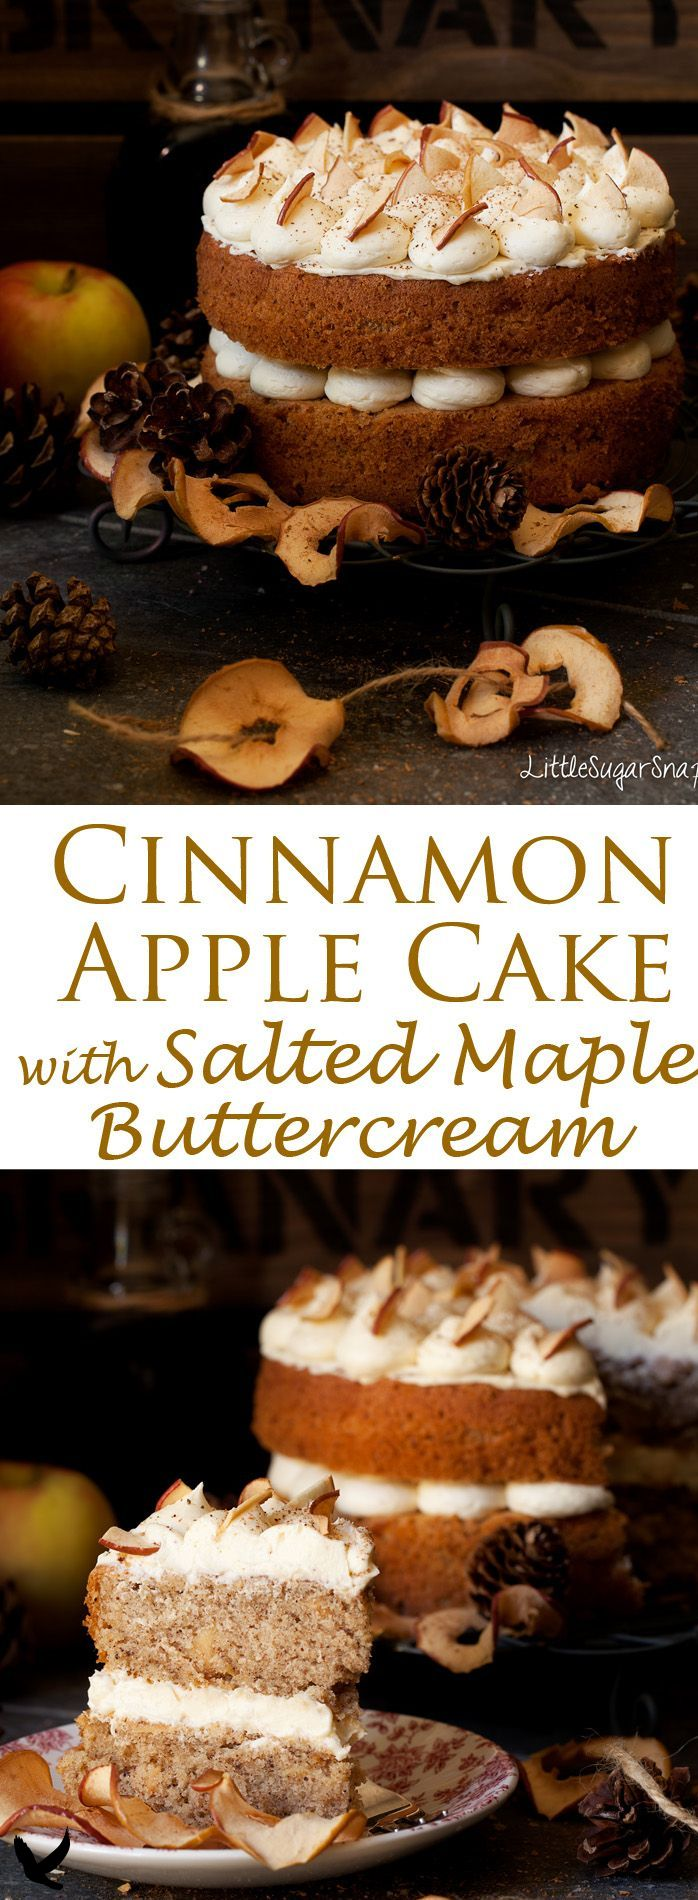 This Cinnamon Apple Cake is a light and bouncy sponge cake loaded with nuggets of home dried ... This Cinnamon Apple Cake is a light and bouncy sponge cake loaded with nuggets of home dried apple. Adorned by delectable salted maple buttercream, this is one elegant cake to fall in love with.